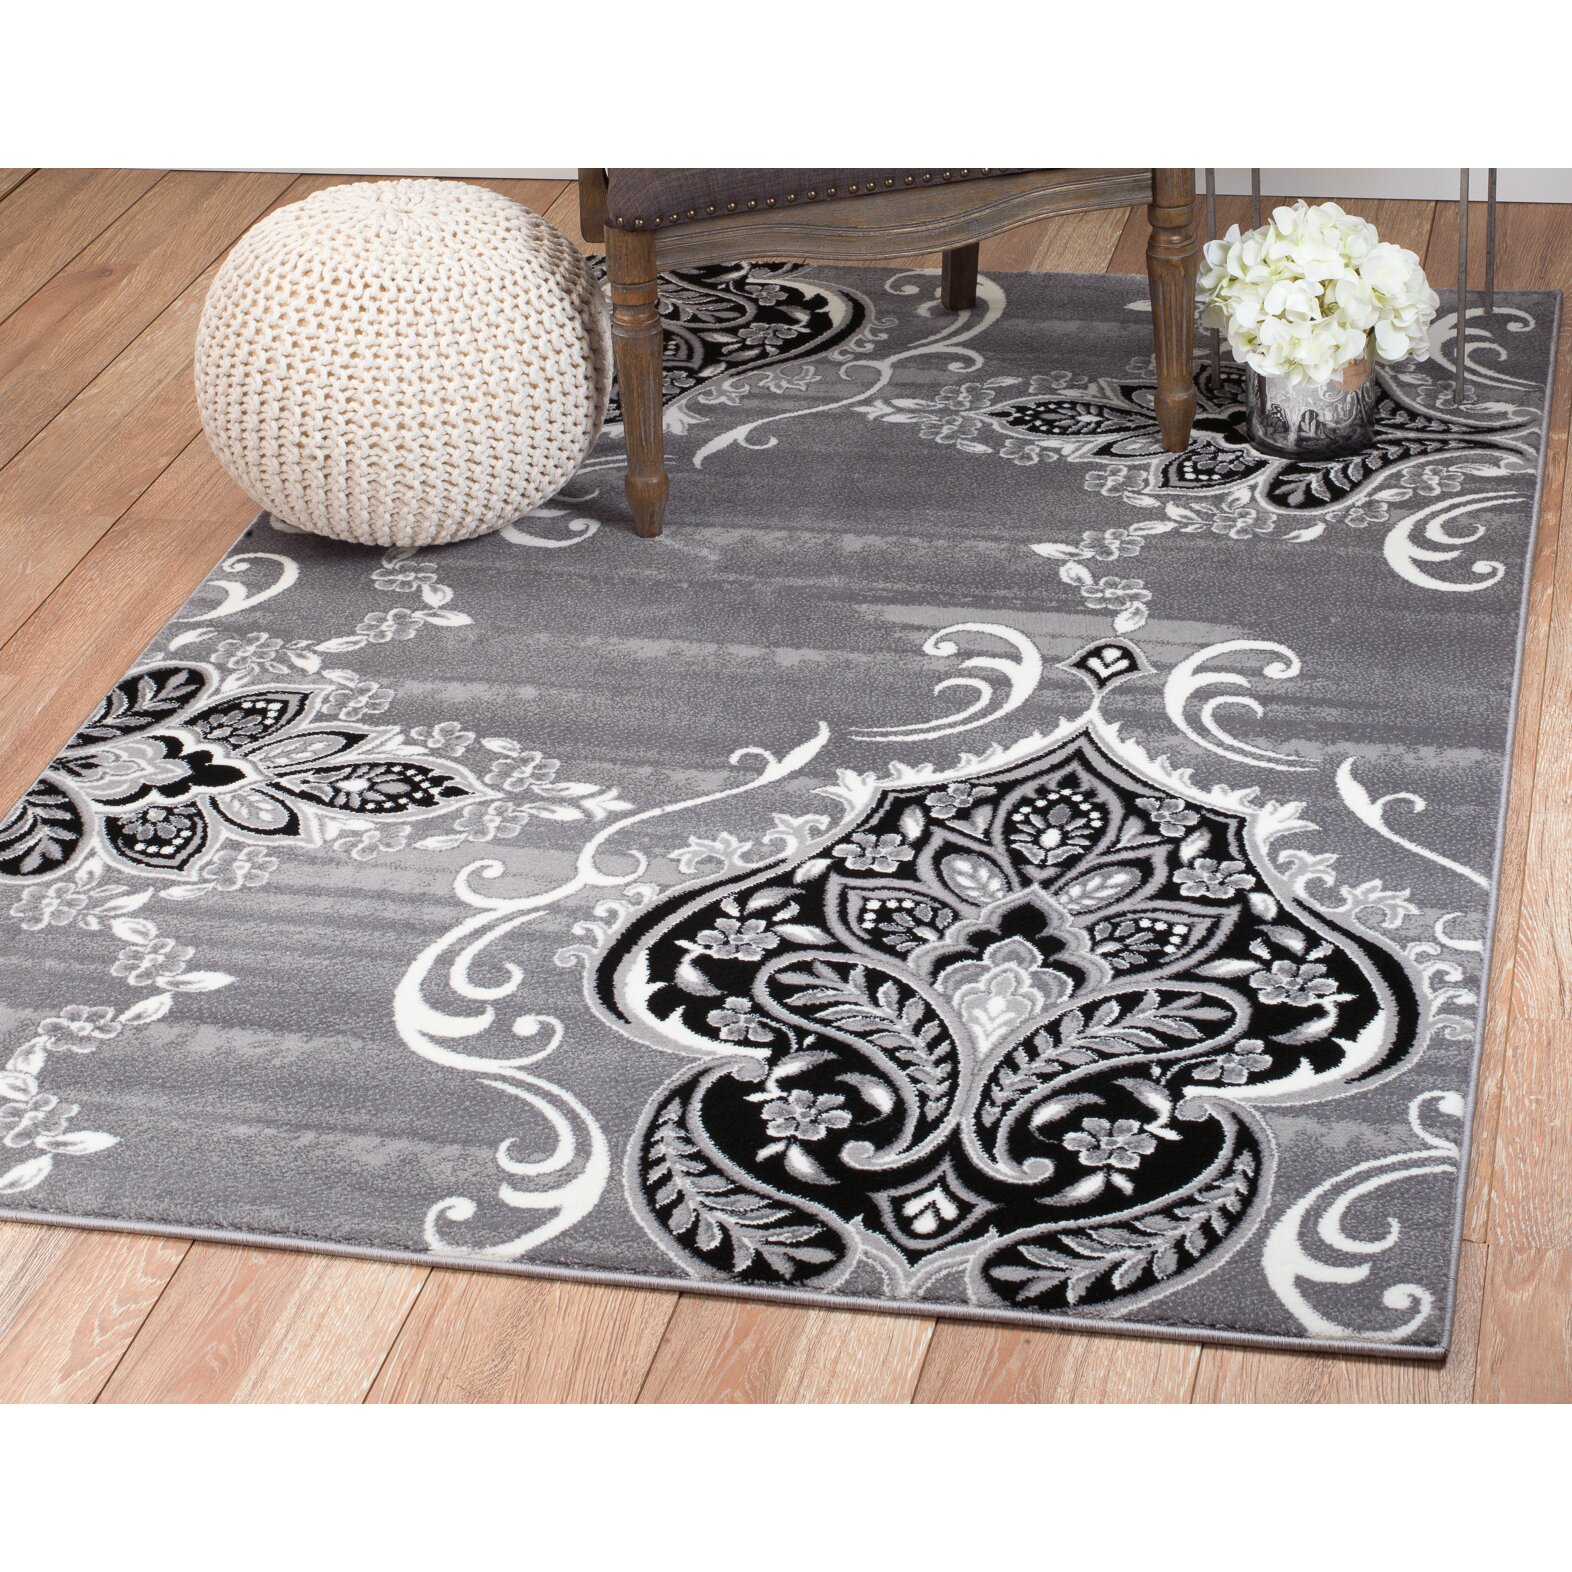 Rug And Decor Inc. Summit Gray Area Rug & Reviews